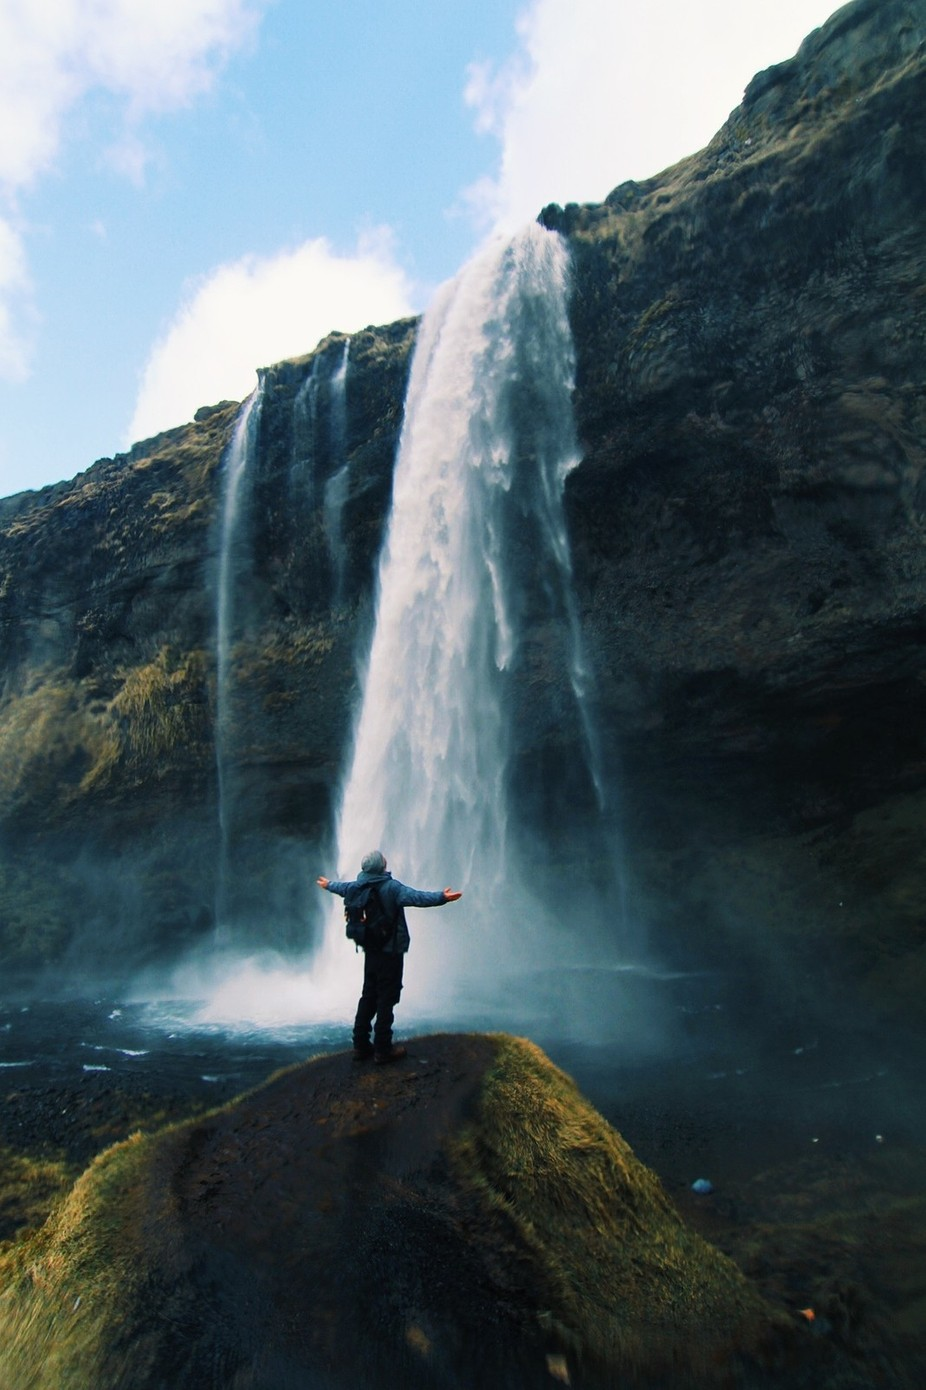 Soaking In Iceland by MitchChristofferson - Celebrating Nature Photo Contest Vol 4